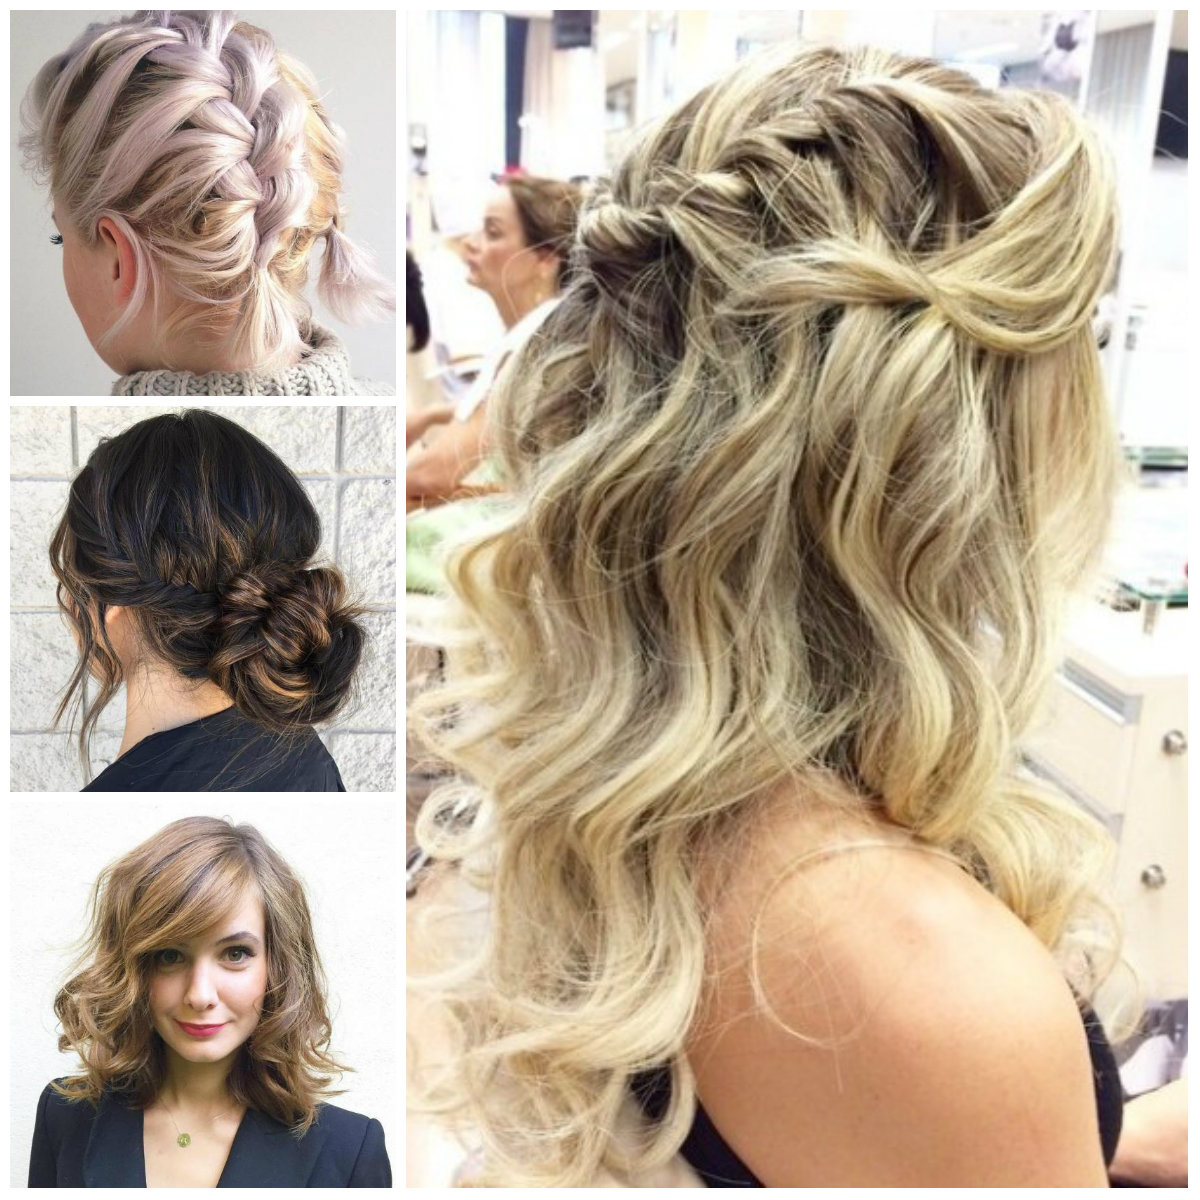 Perfectly Imperfect Hairstyles for All Hair Lengths